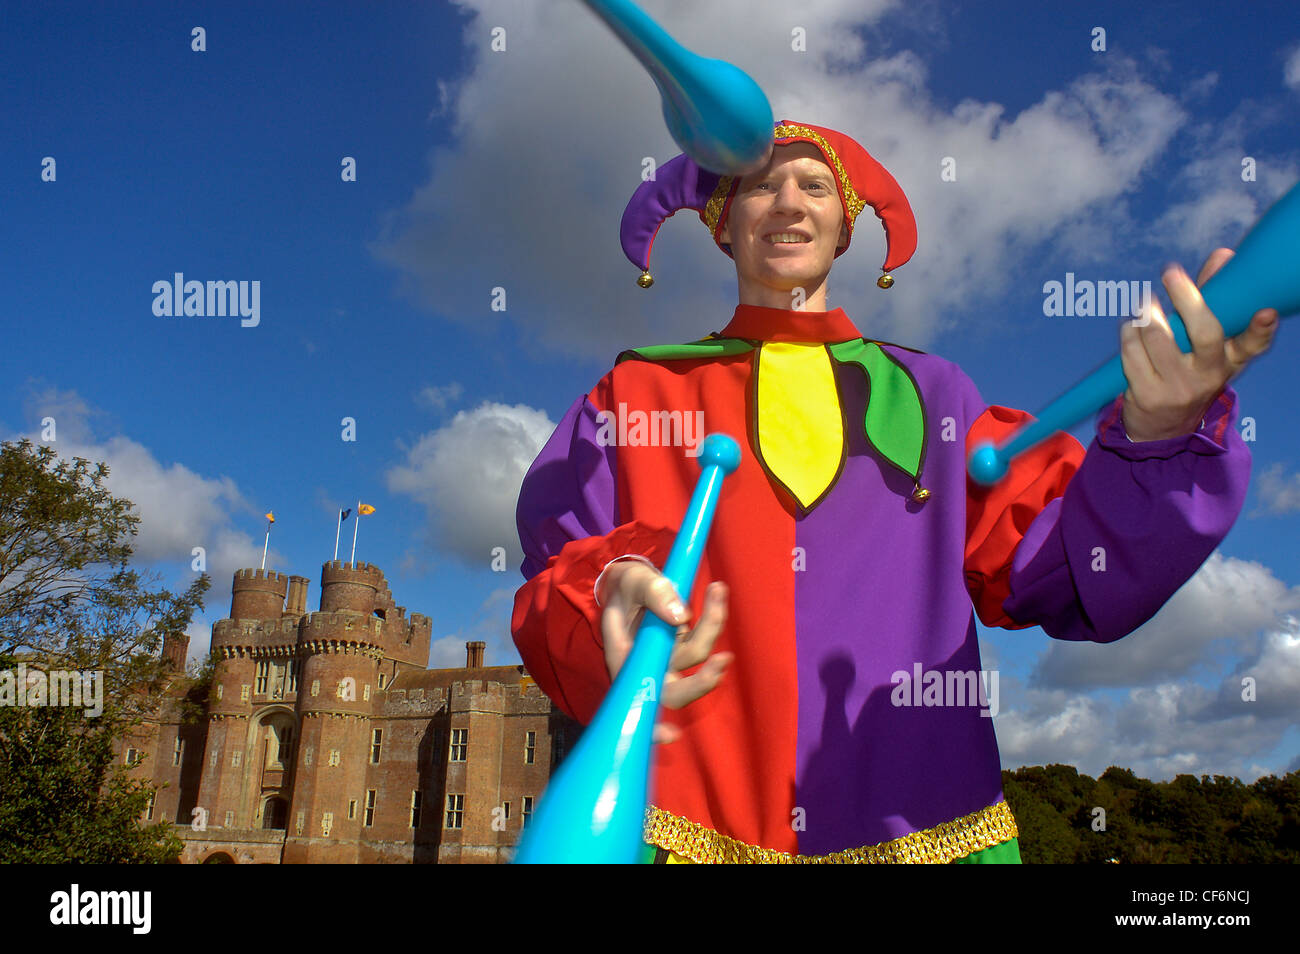 Medieval Juggler Stock Photos & Medieval Juggler Stock